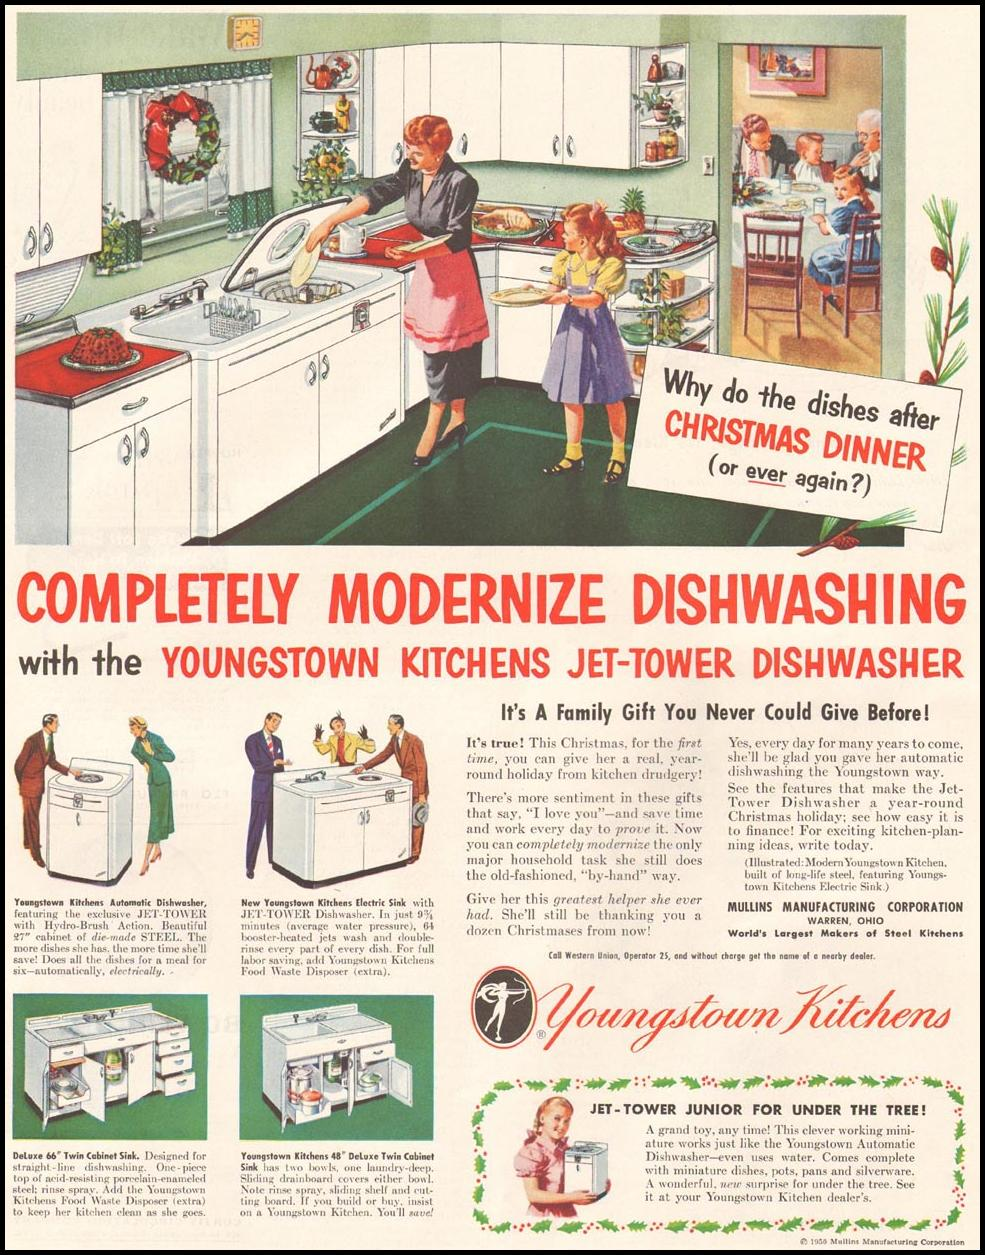 YOUNGSTOWN JET-TOWER DISHWASHER LADIES' HOME JOURNAL 11/01/1950 p. 223